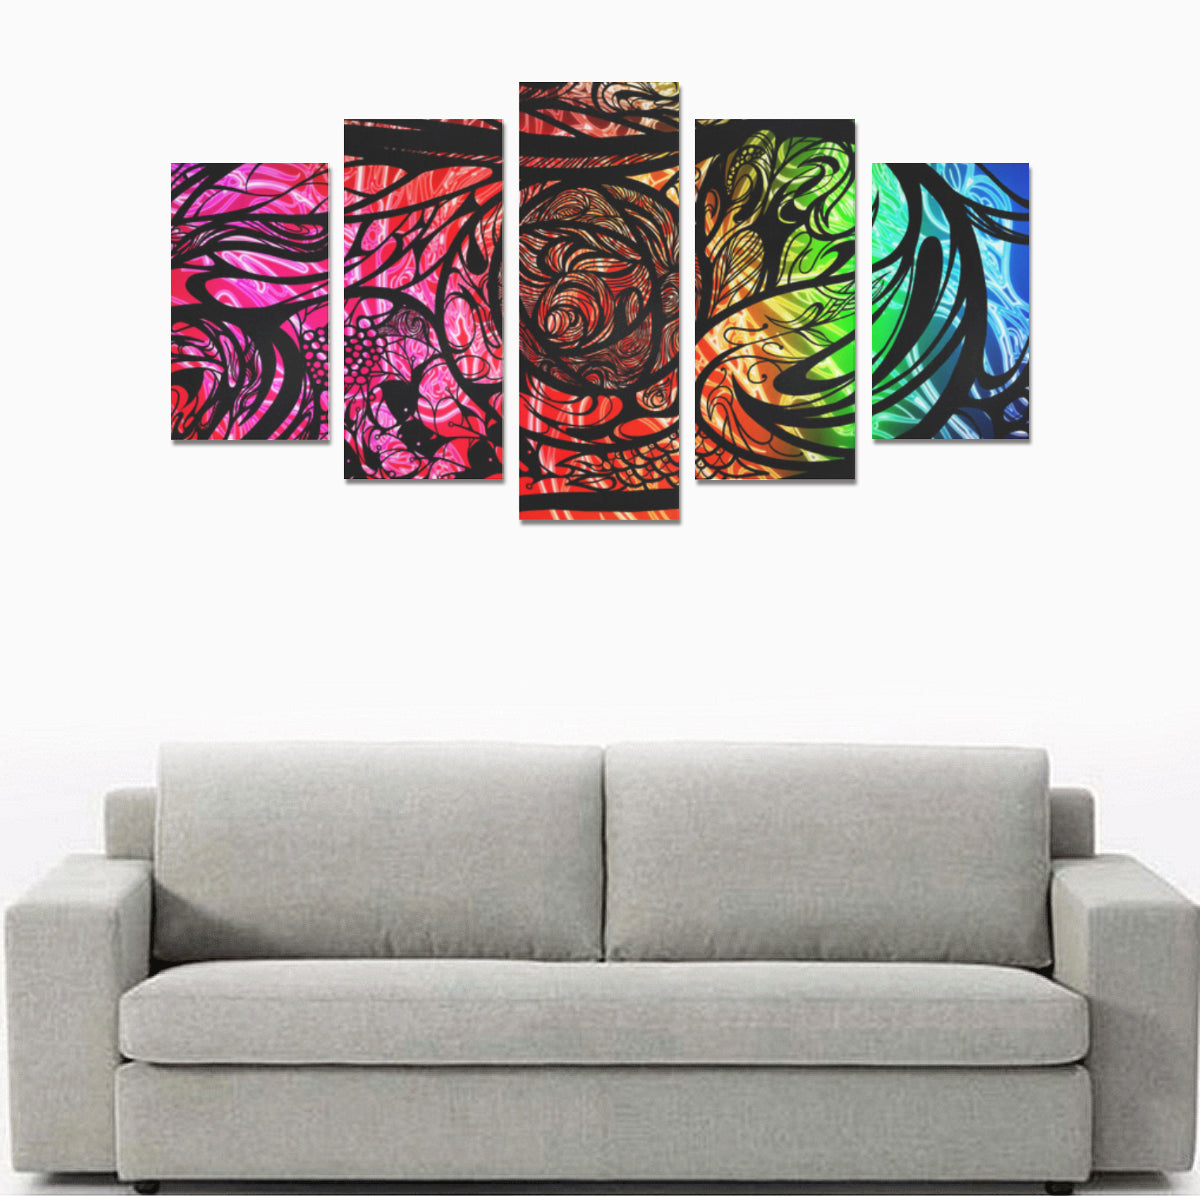 Zen Doodle Chromatic Chaos Canvas Print Set - Size A